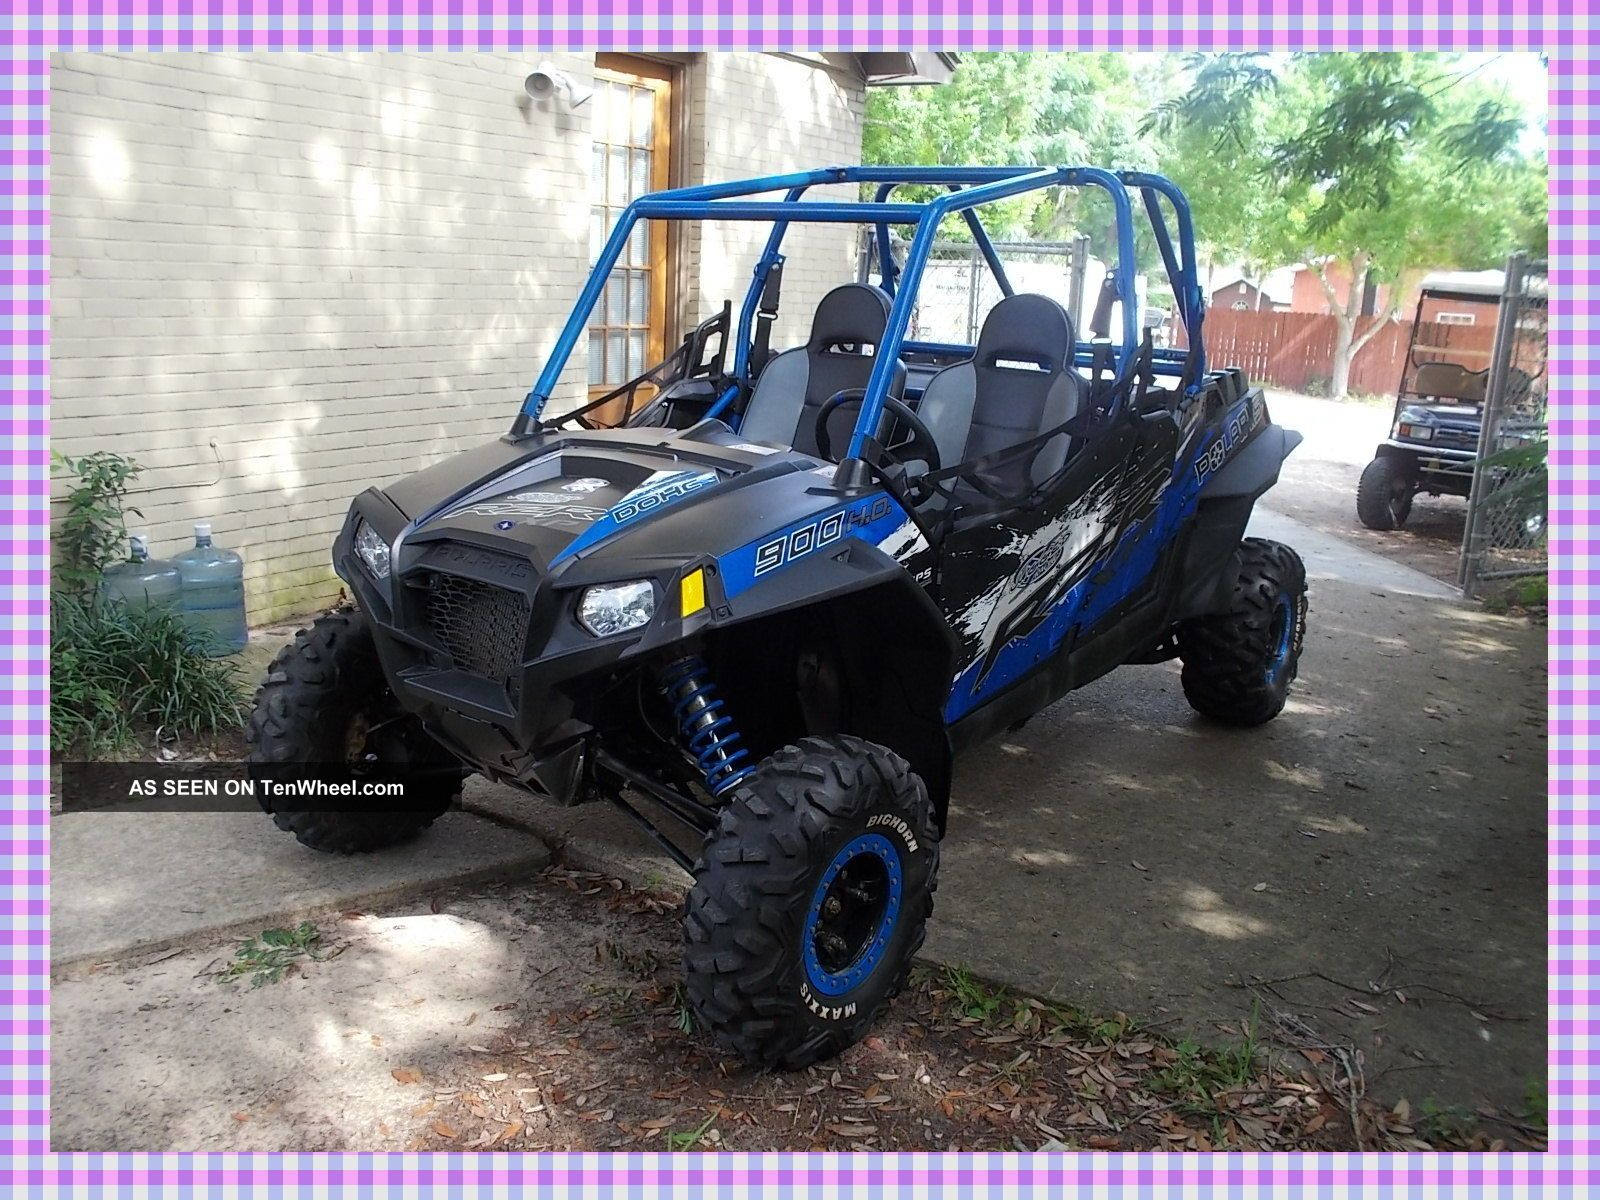 2013 Polaris Rzr Polaris photo